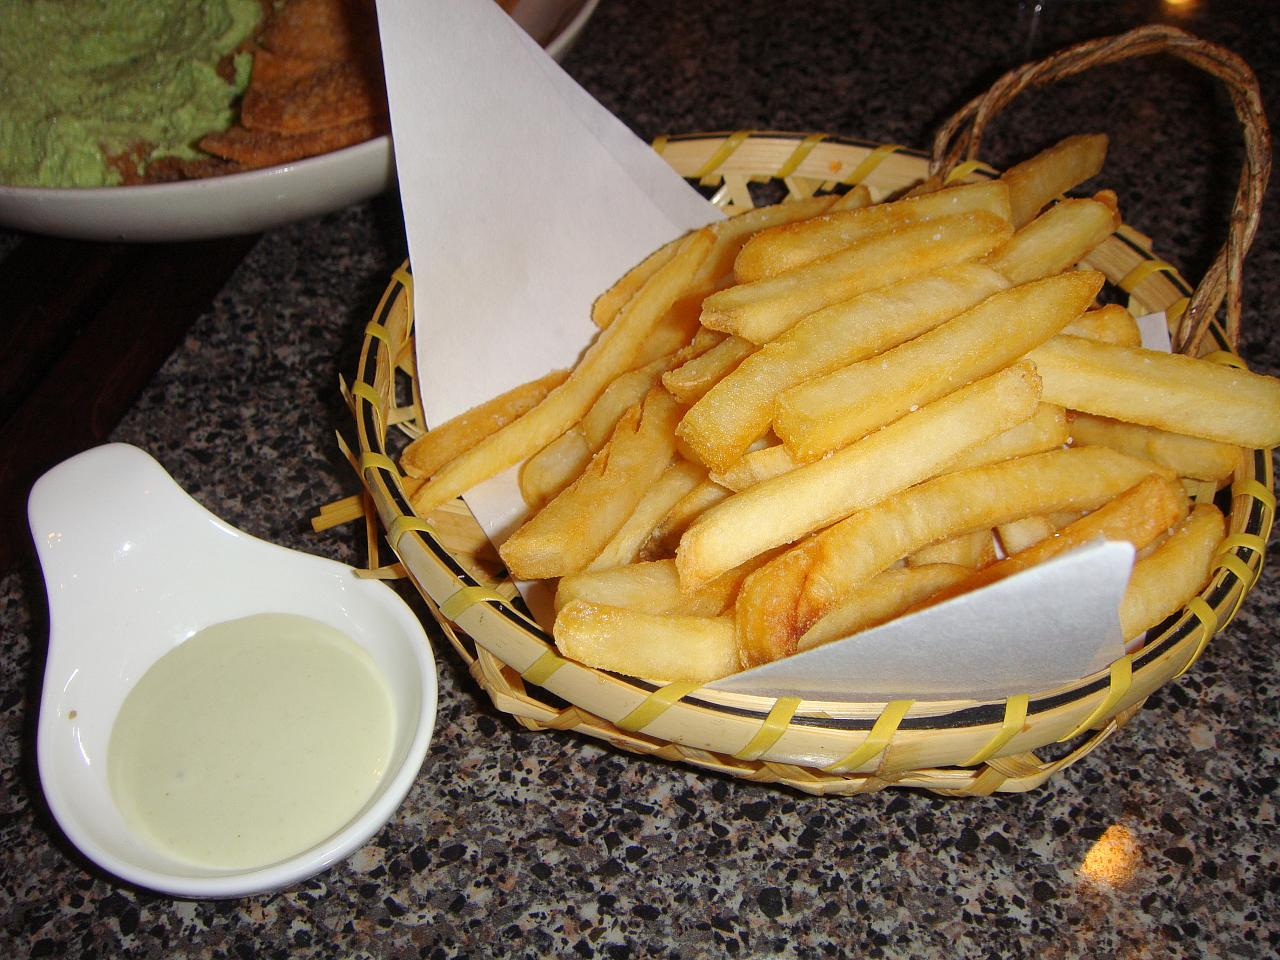 Fries with wasabi aioli